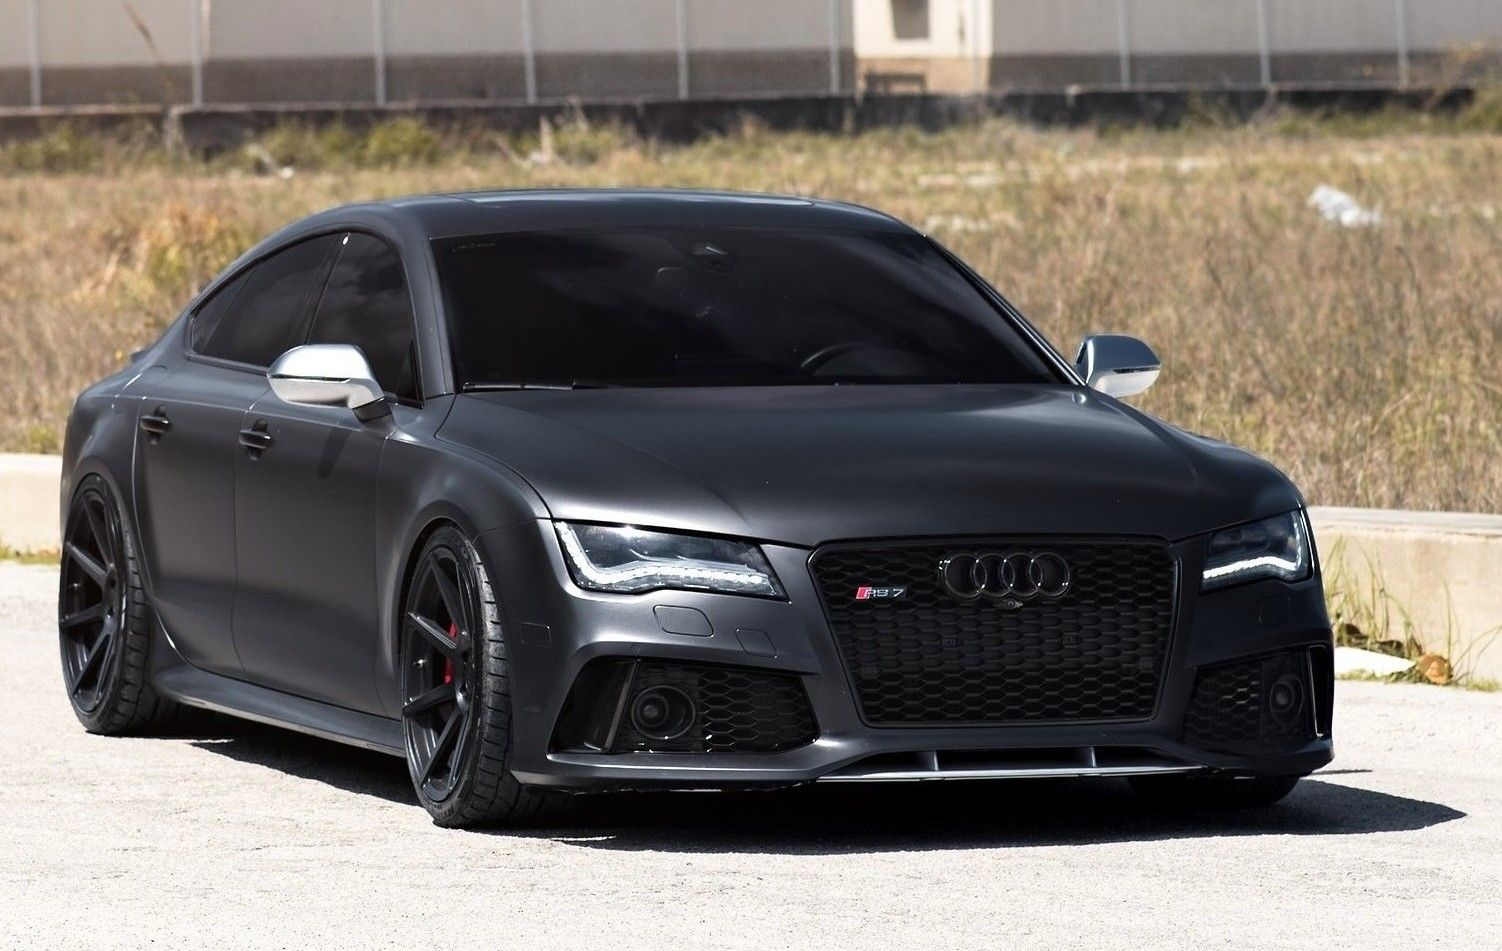 Matt Black Audi Rs7 On Velgen Wheels Cars Coole Autos Autos